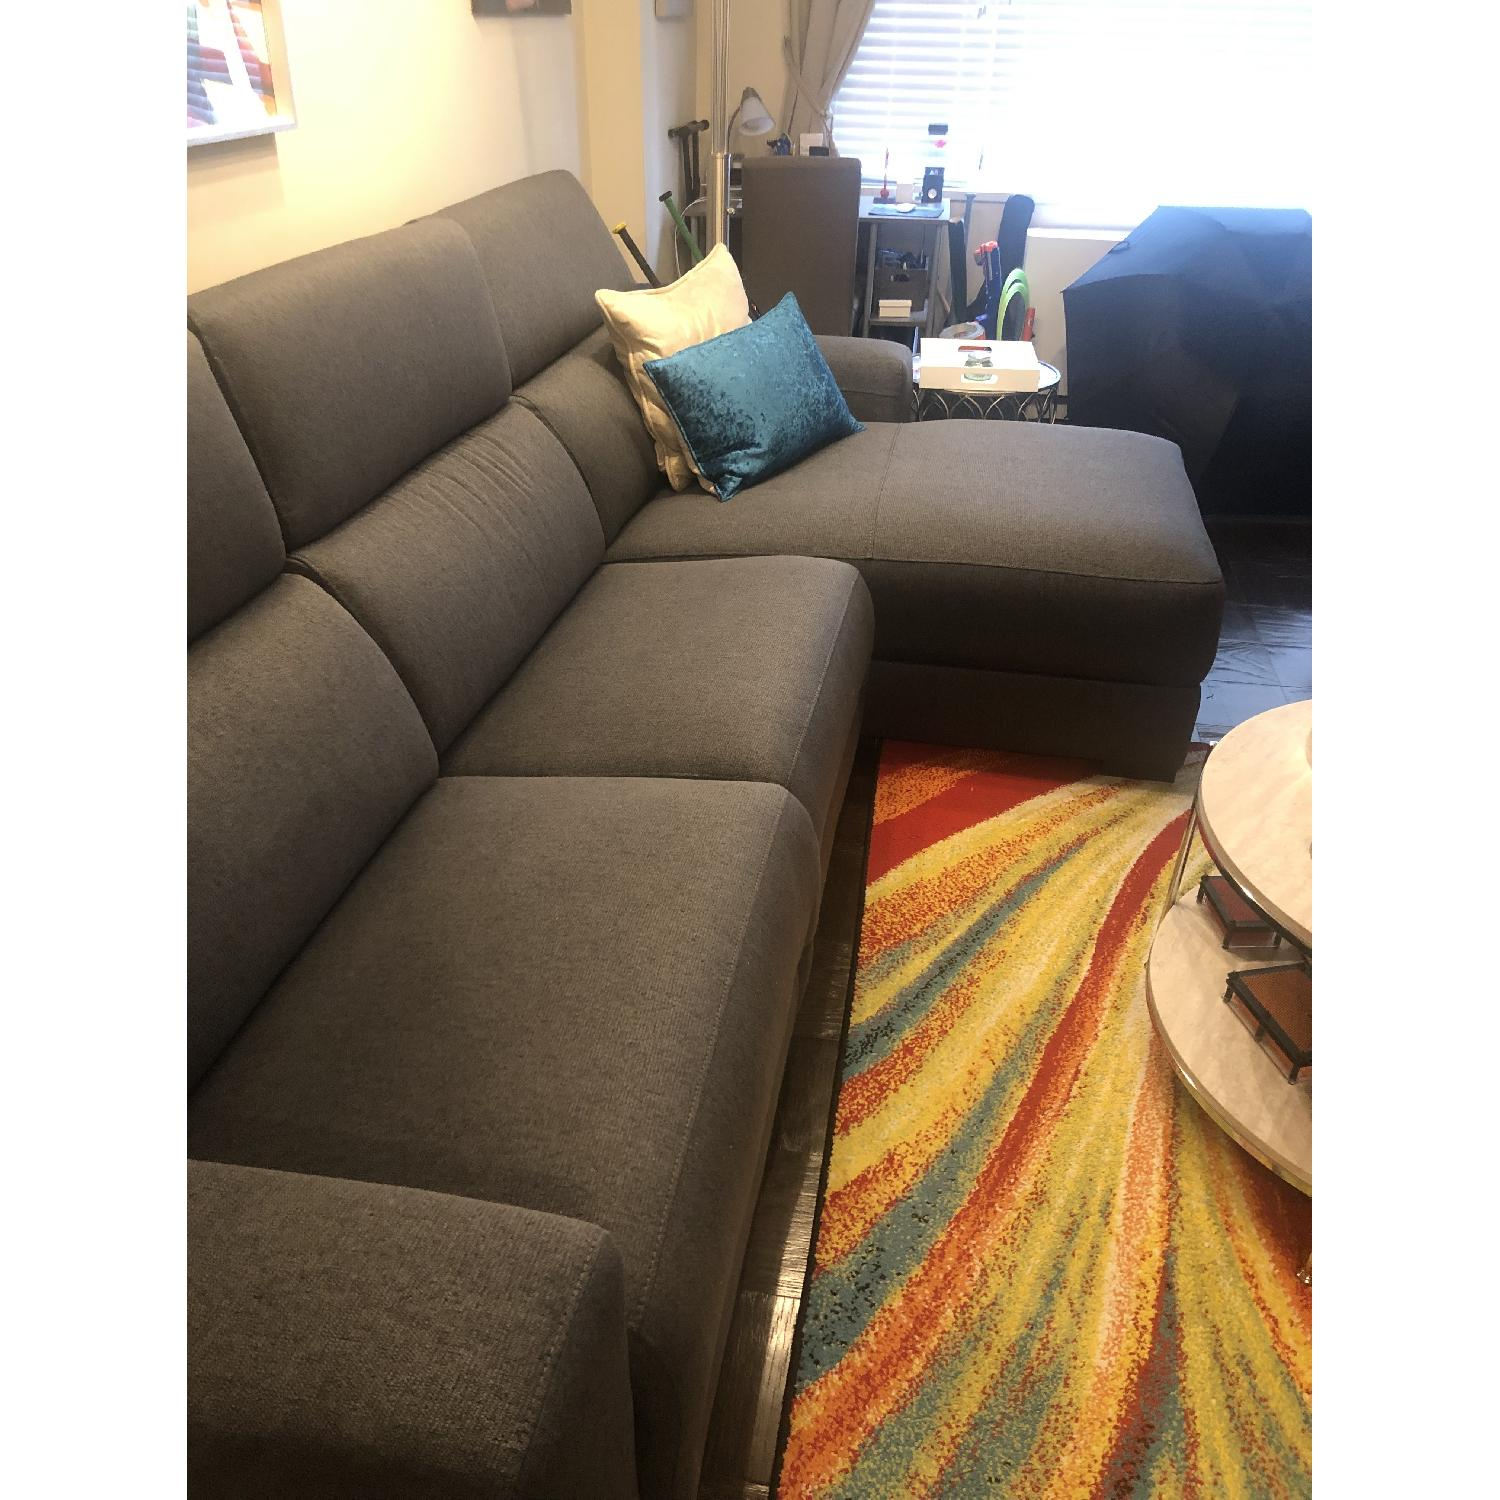 Magnificent Macys Grey Fabric Reclining Sectional Sofa W Chaise Aptdeco Creativecarmelina Interior Chair Design Creativecarmelinacom